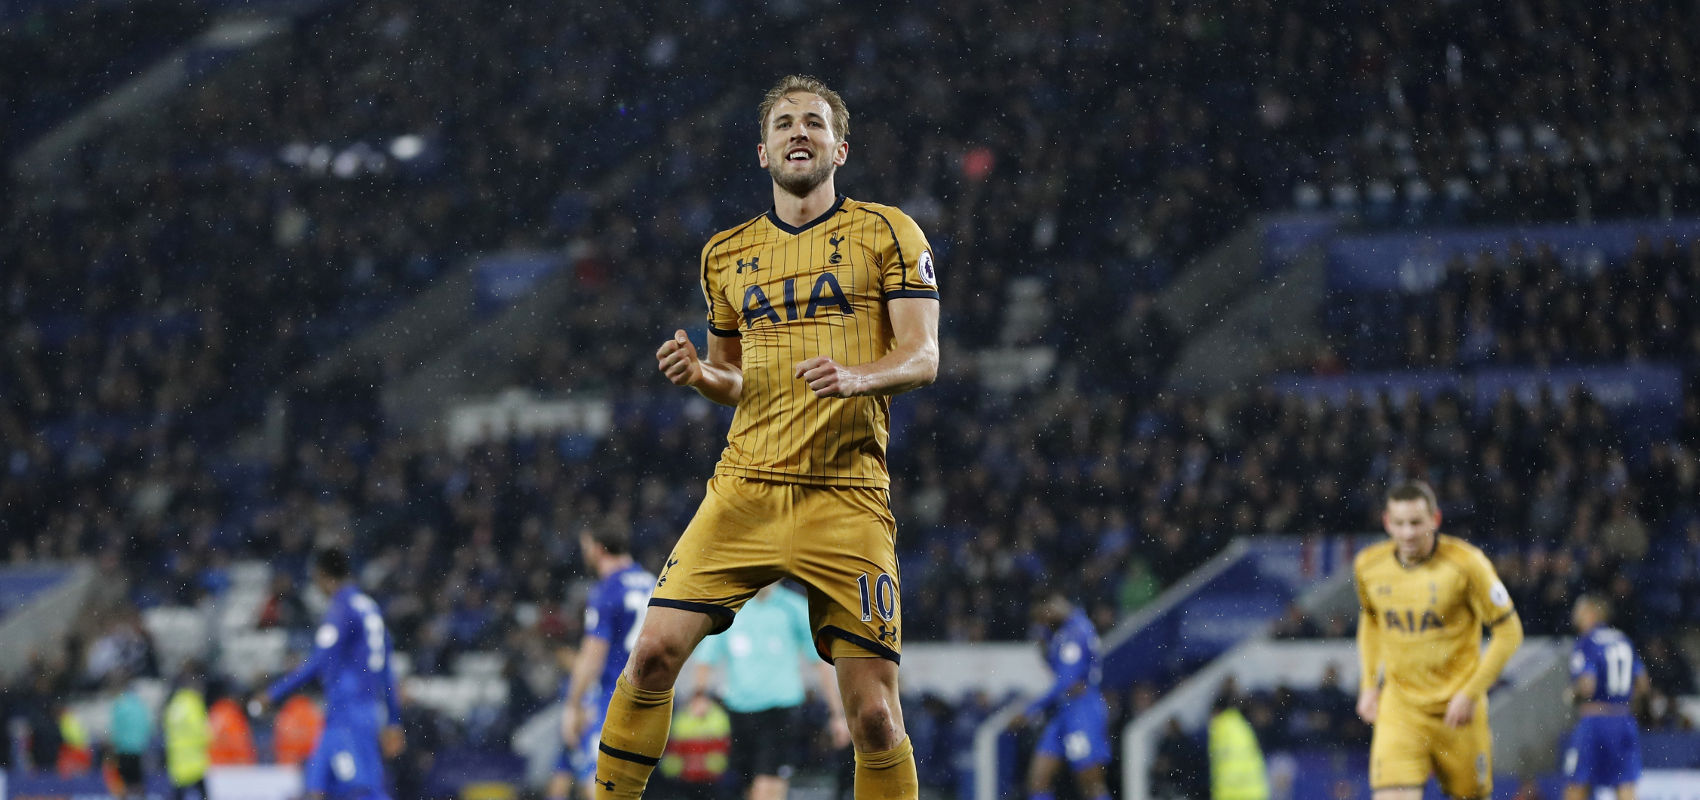 → Harry Kane was one of two FPL assets to score four goals in a single Premier League match in 2016/17. Who was the other?